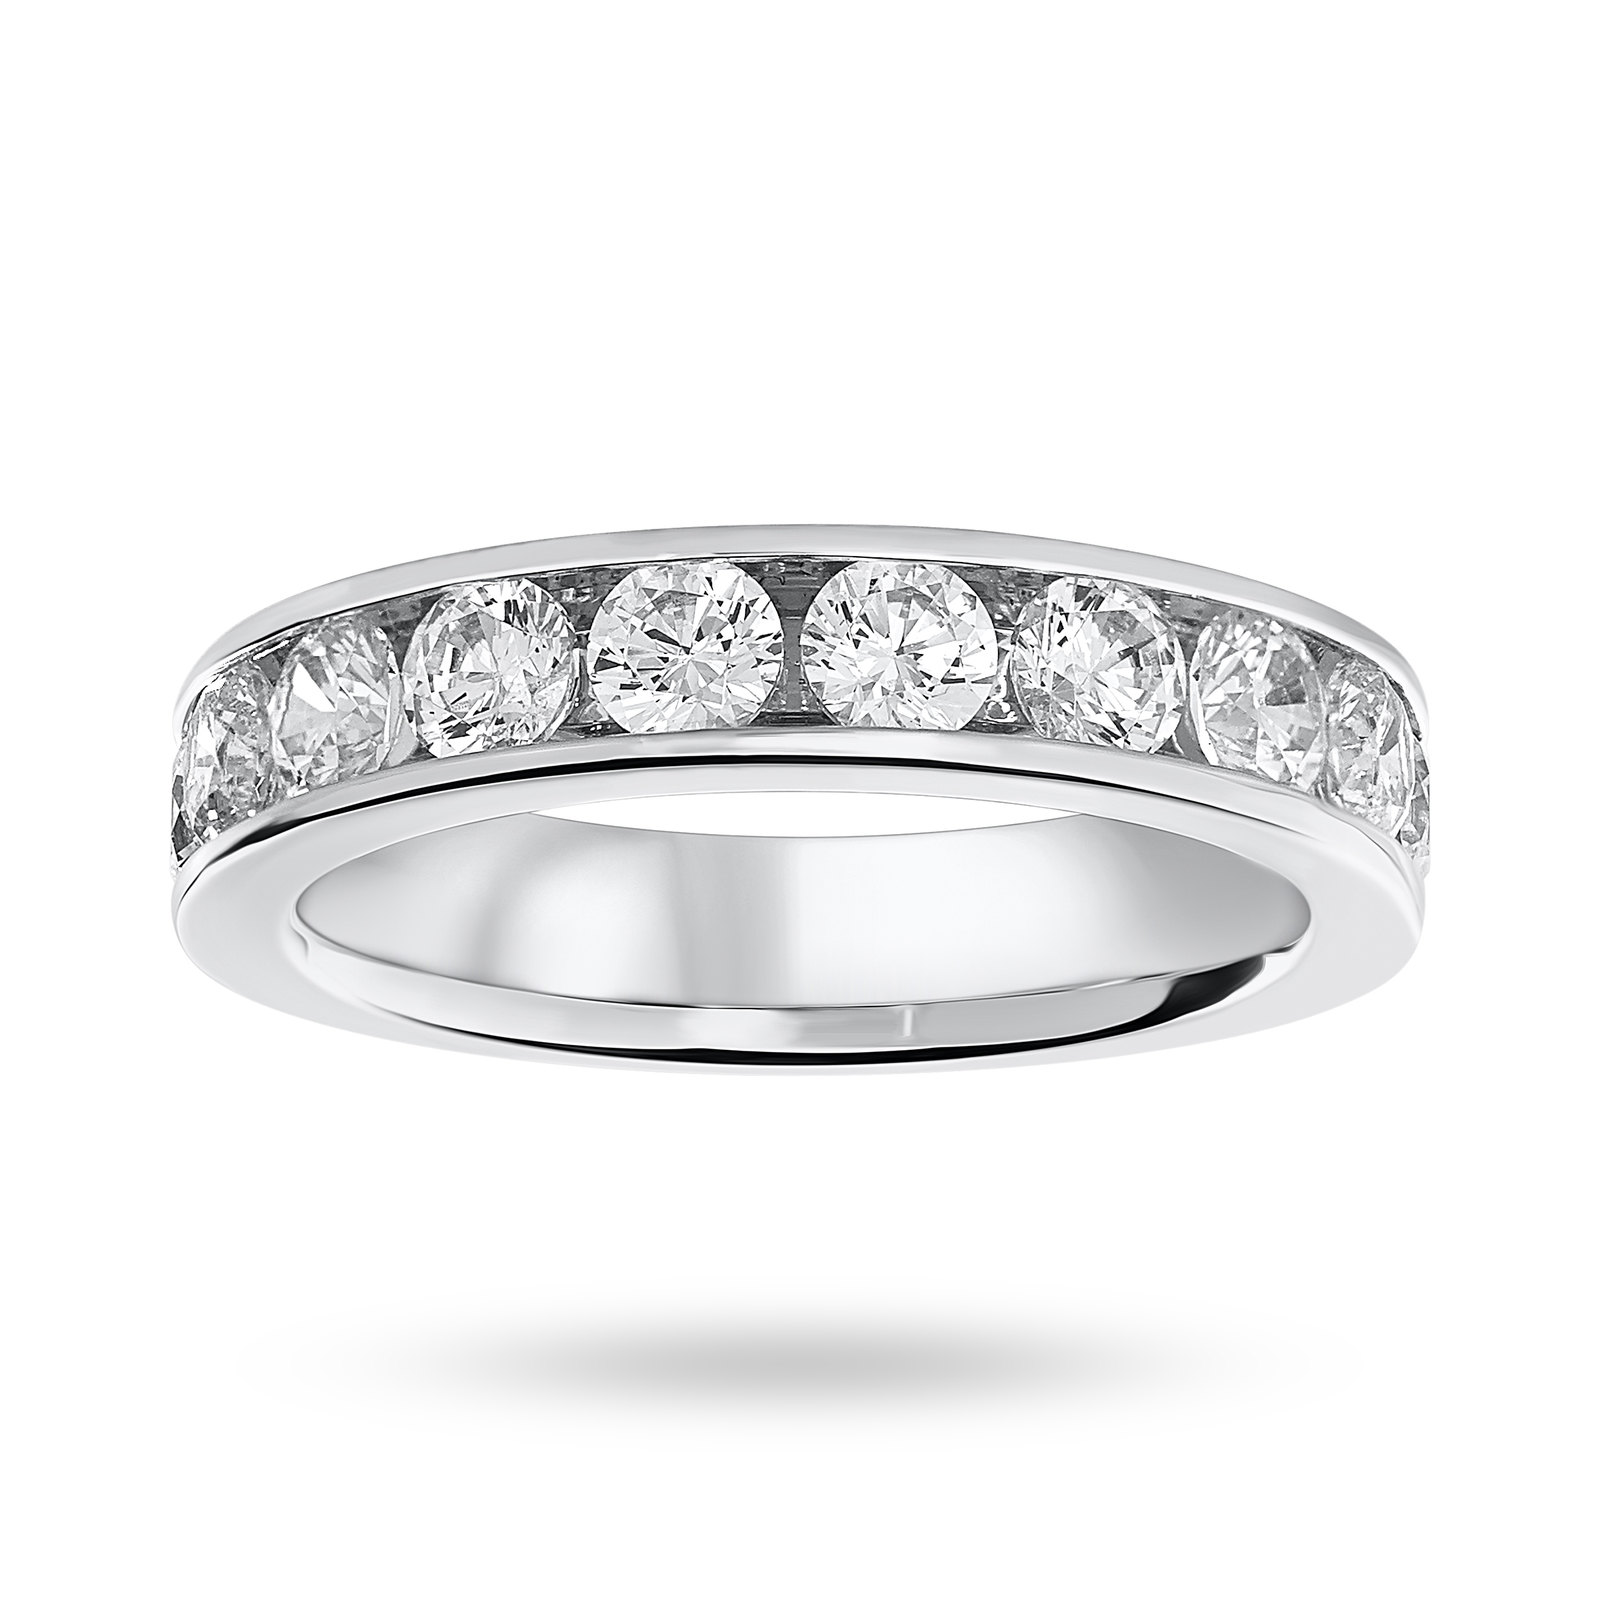 9 Carat White Gold 1.50 Carat Brilliant Cut Half Eternity Ring